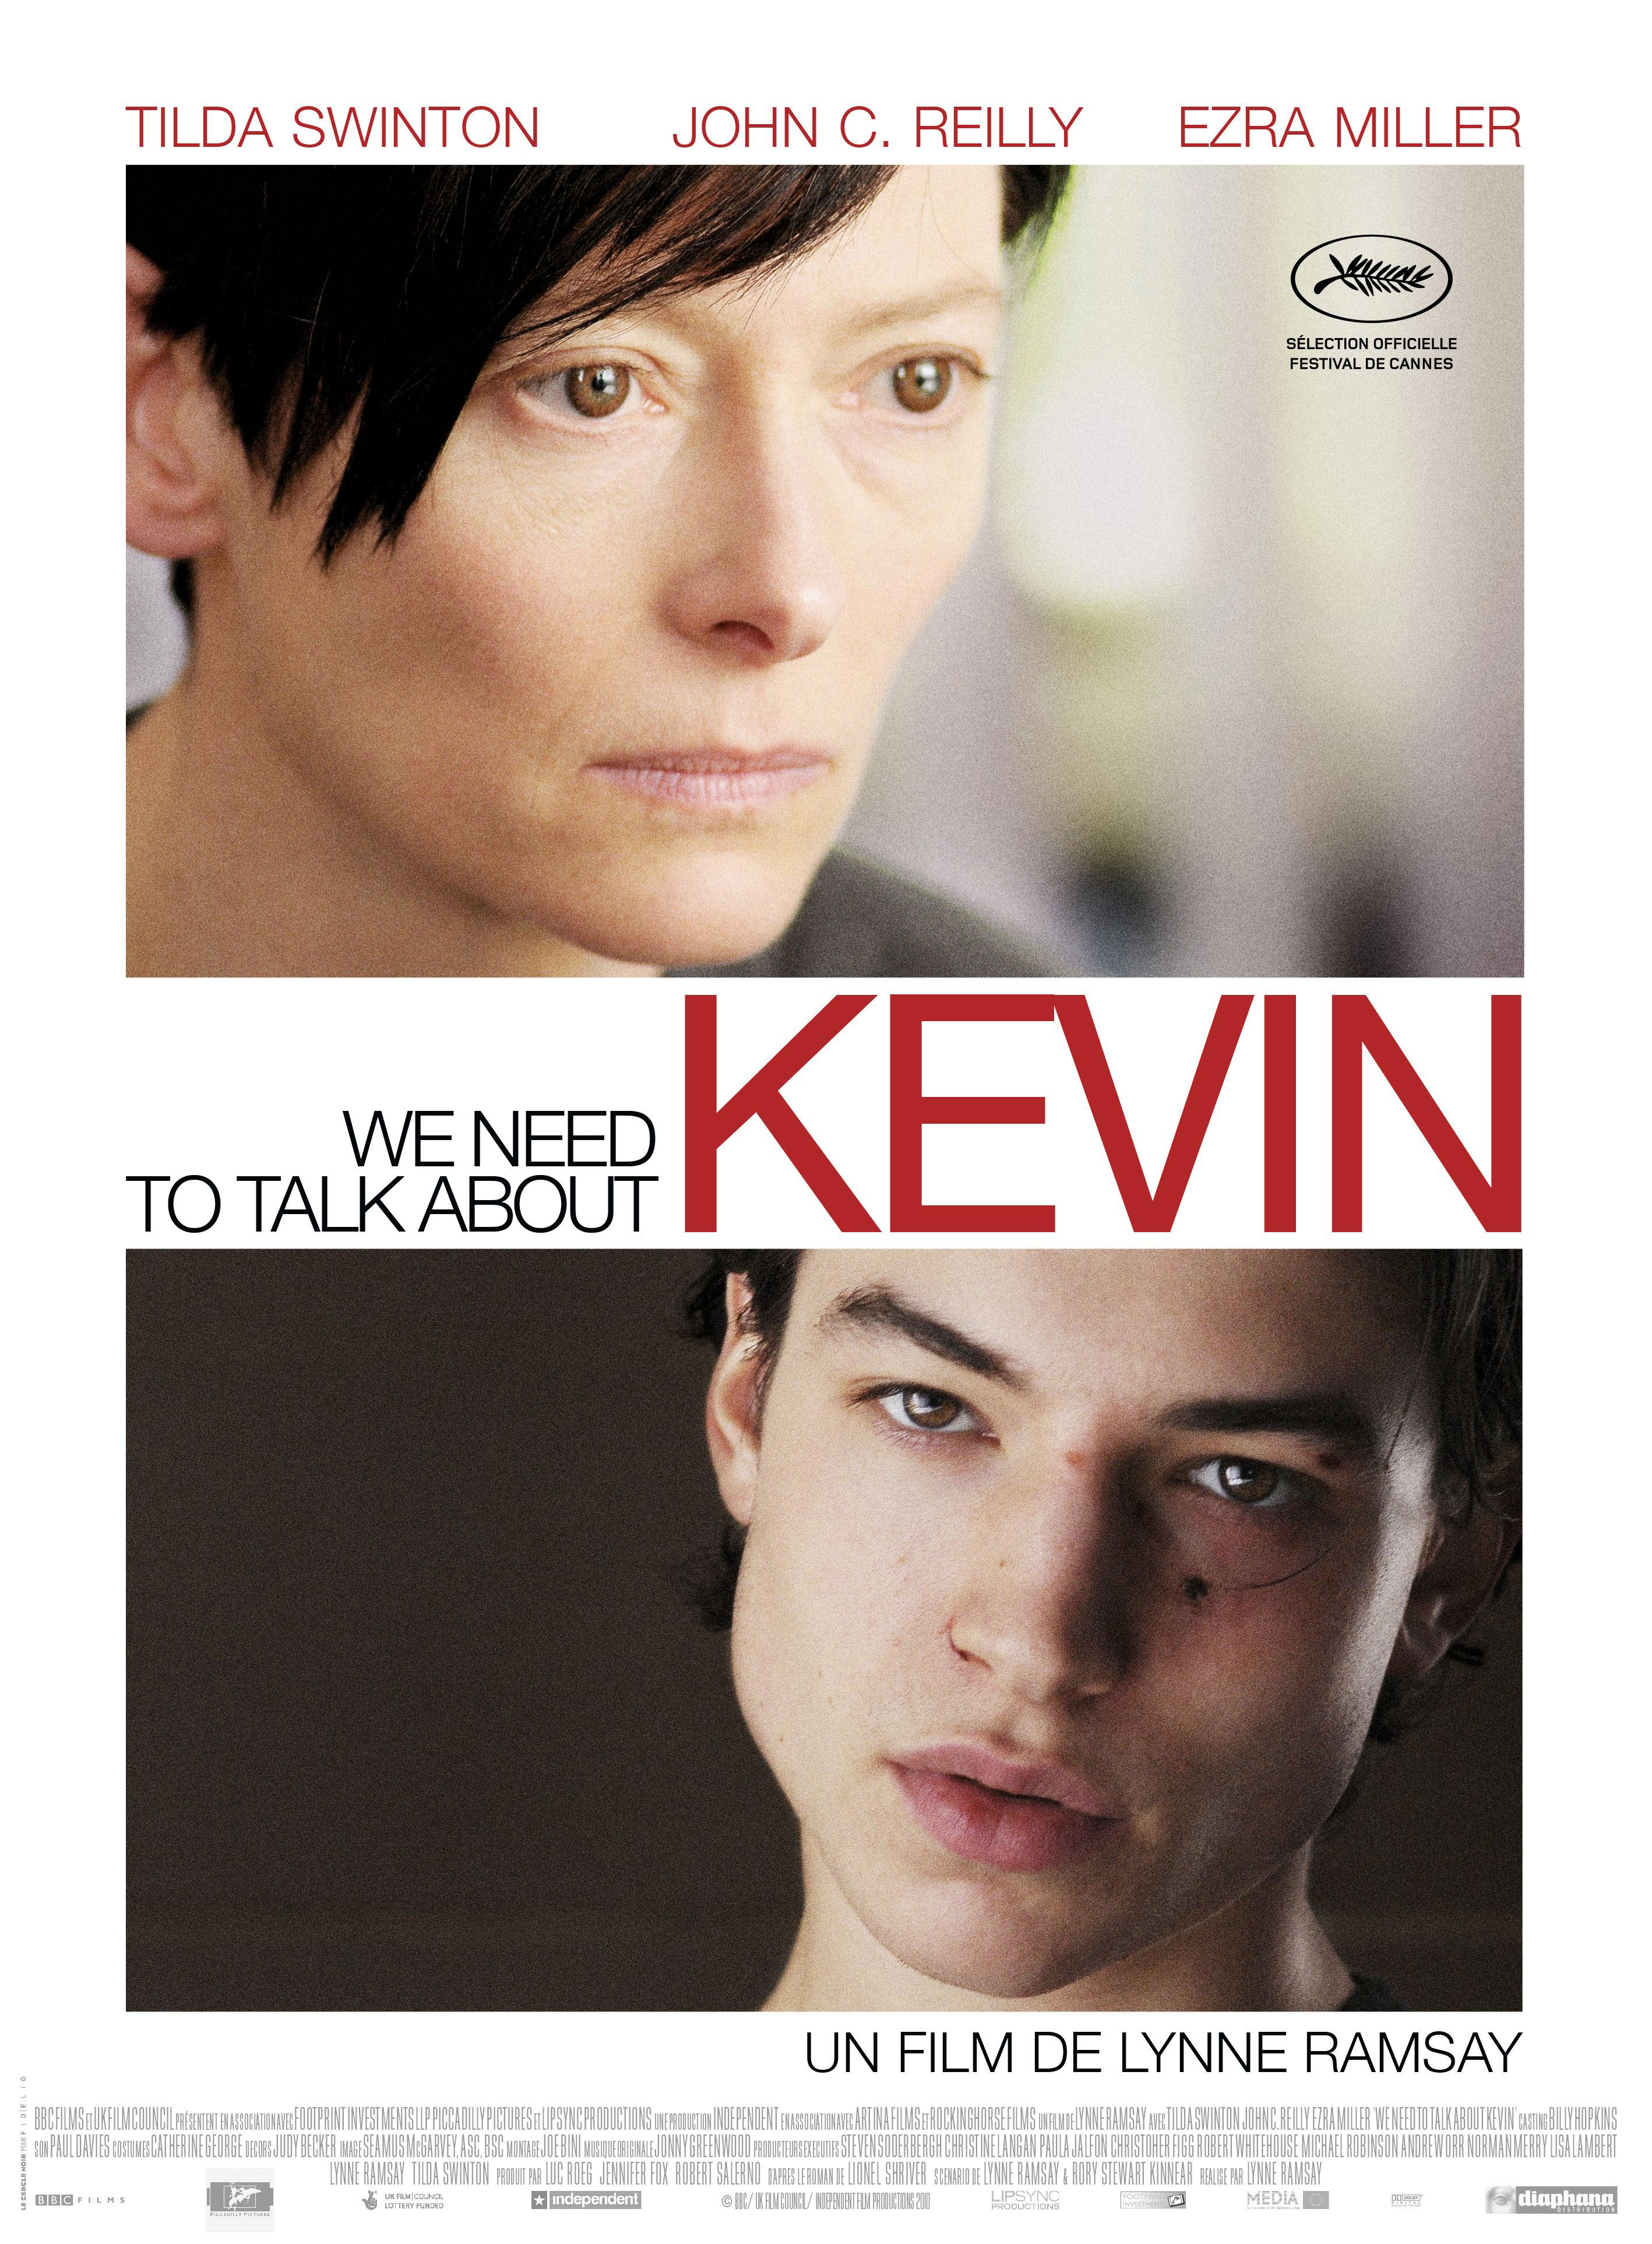 We Have To Talk About Kevin